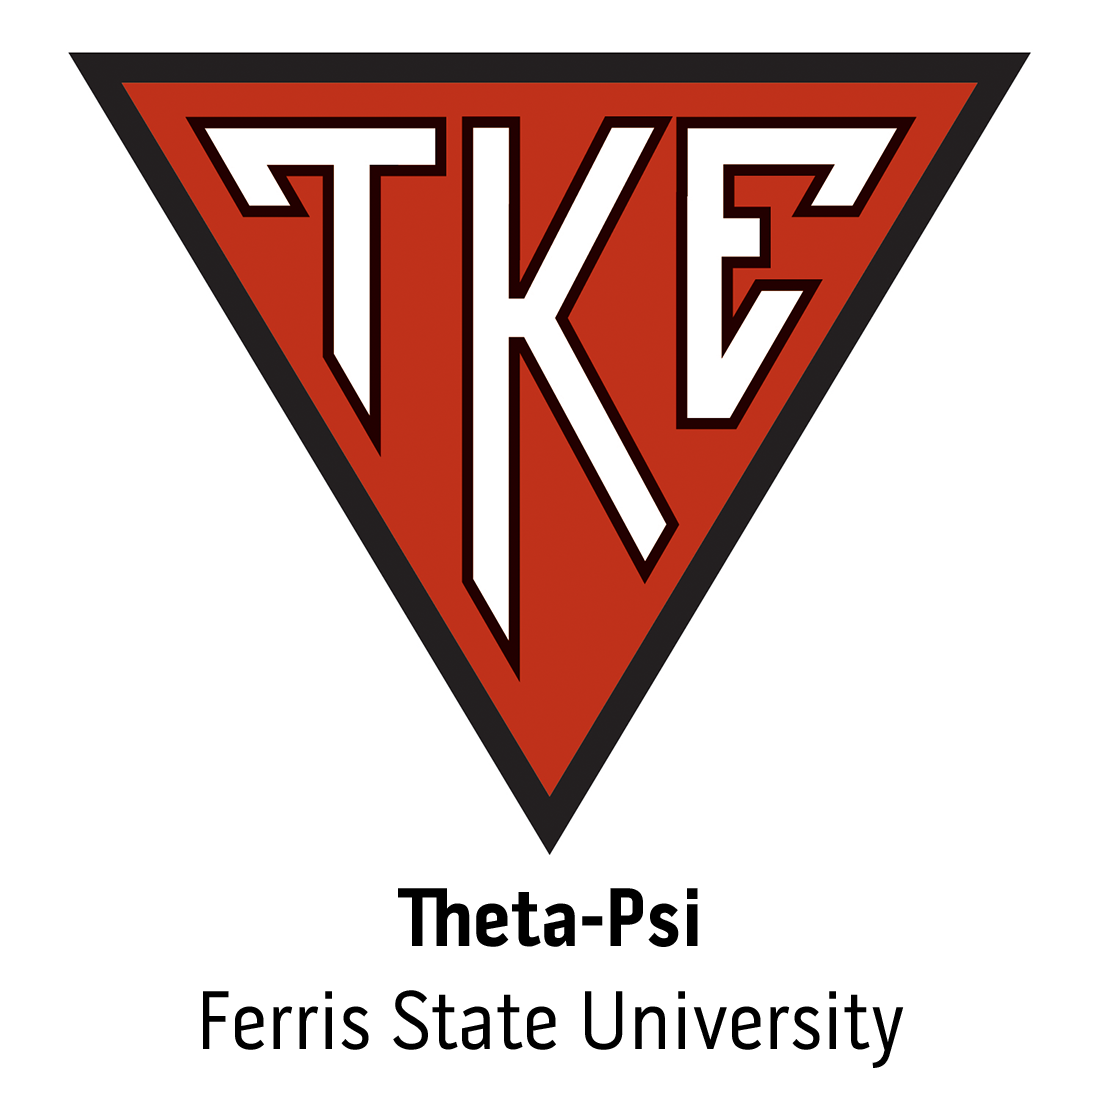 Theta-Psi Chapter at Ferris State University